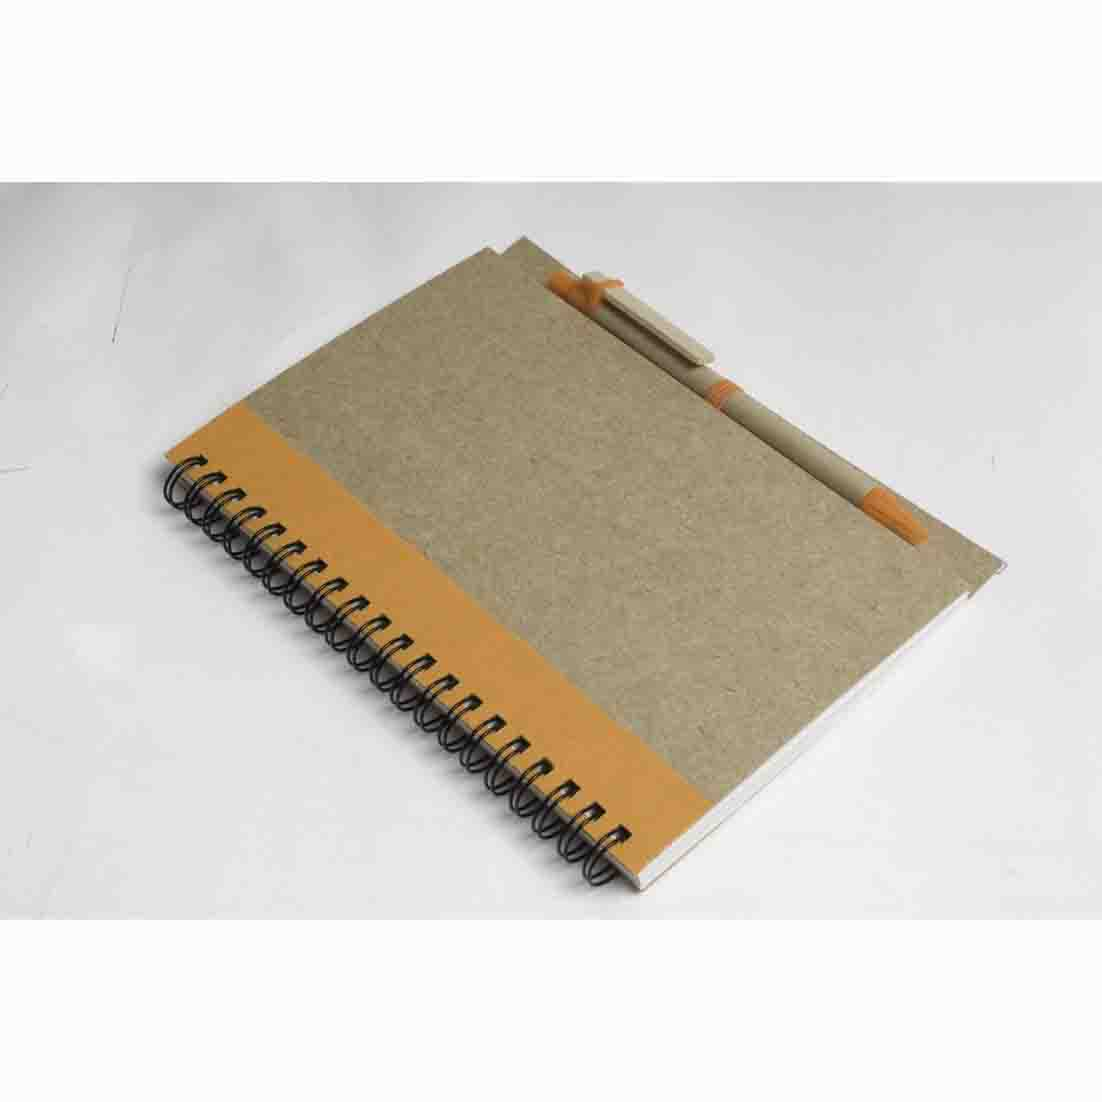 Recycled paper notebook with pen - orange gb-211 or